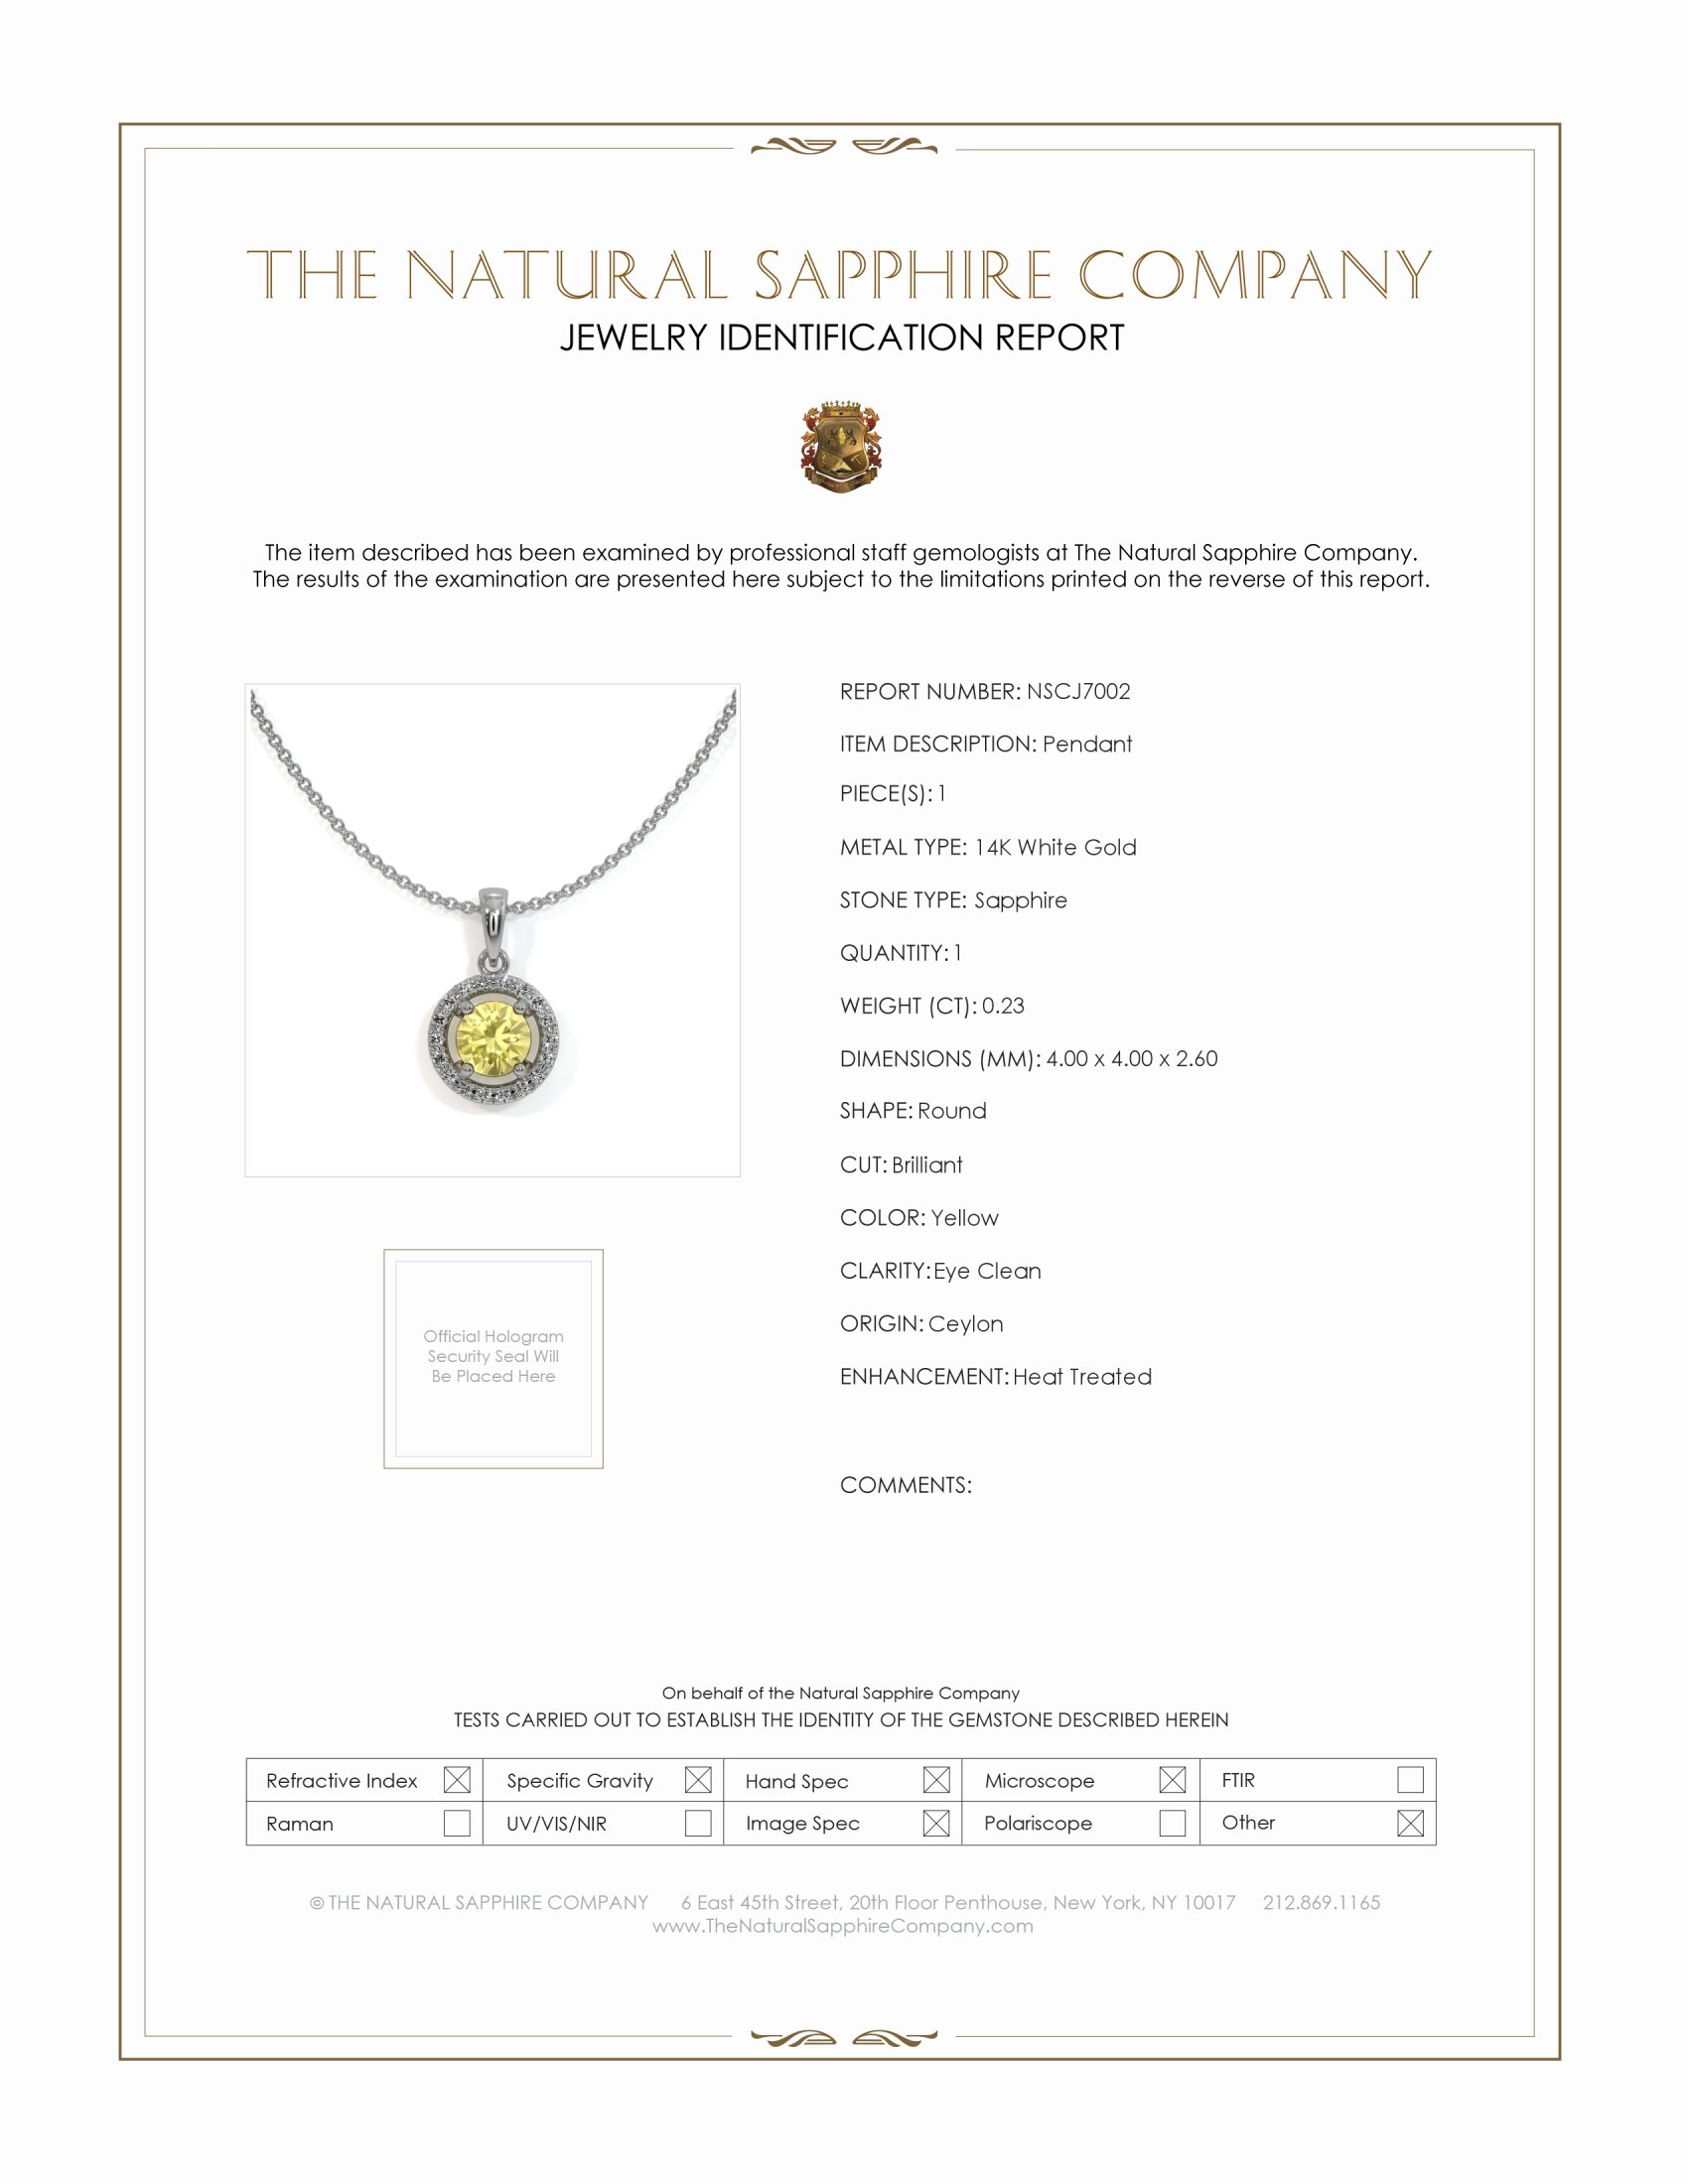 0.23ct Yellow Sapphire Pendant Certification